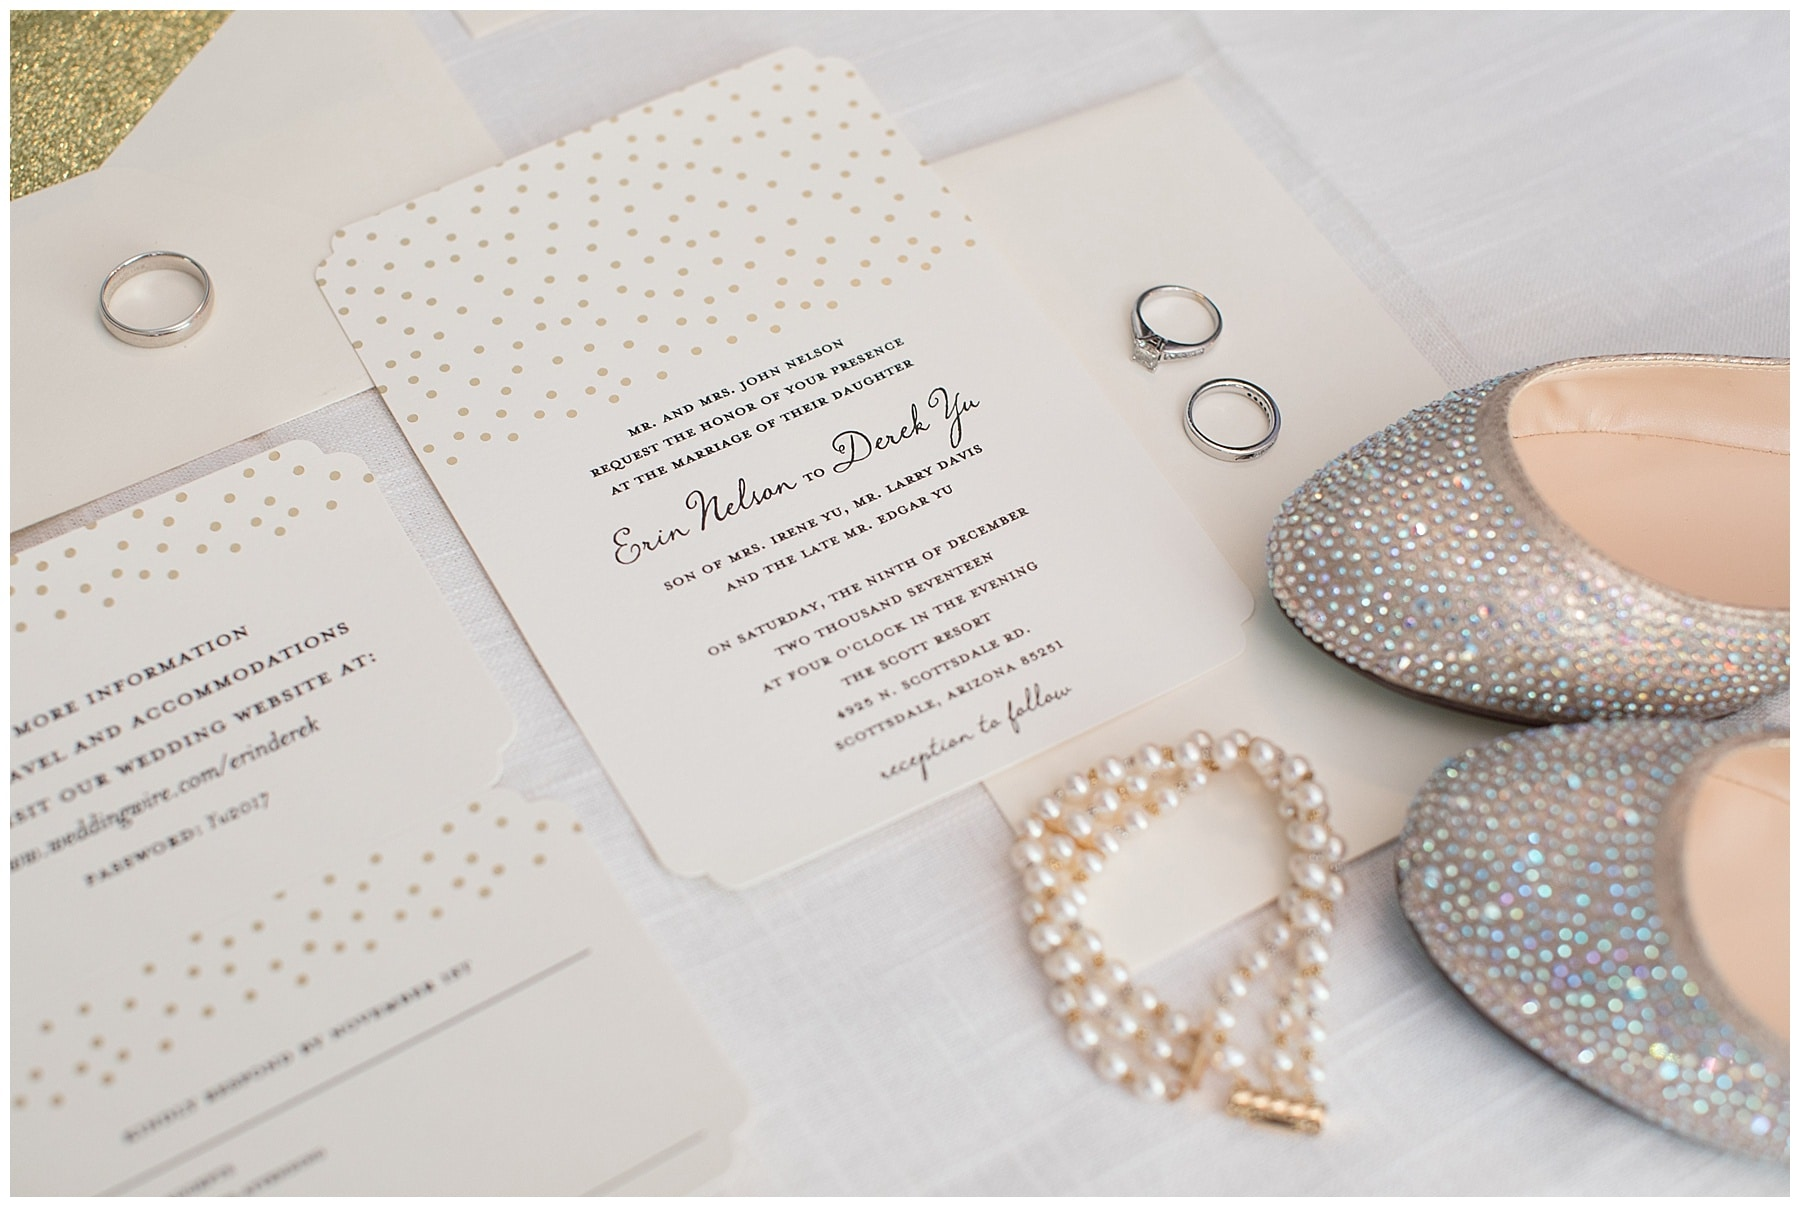 A detail photo showing shoes and jewelry alongside wedding invitation